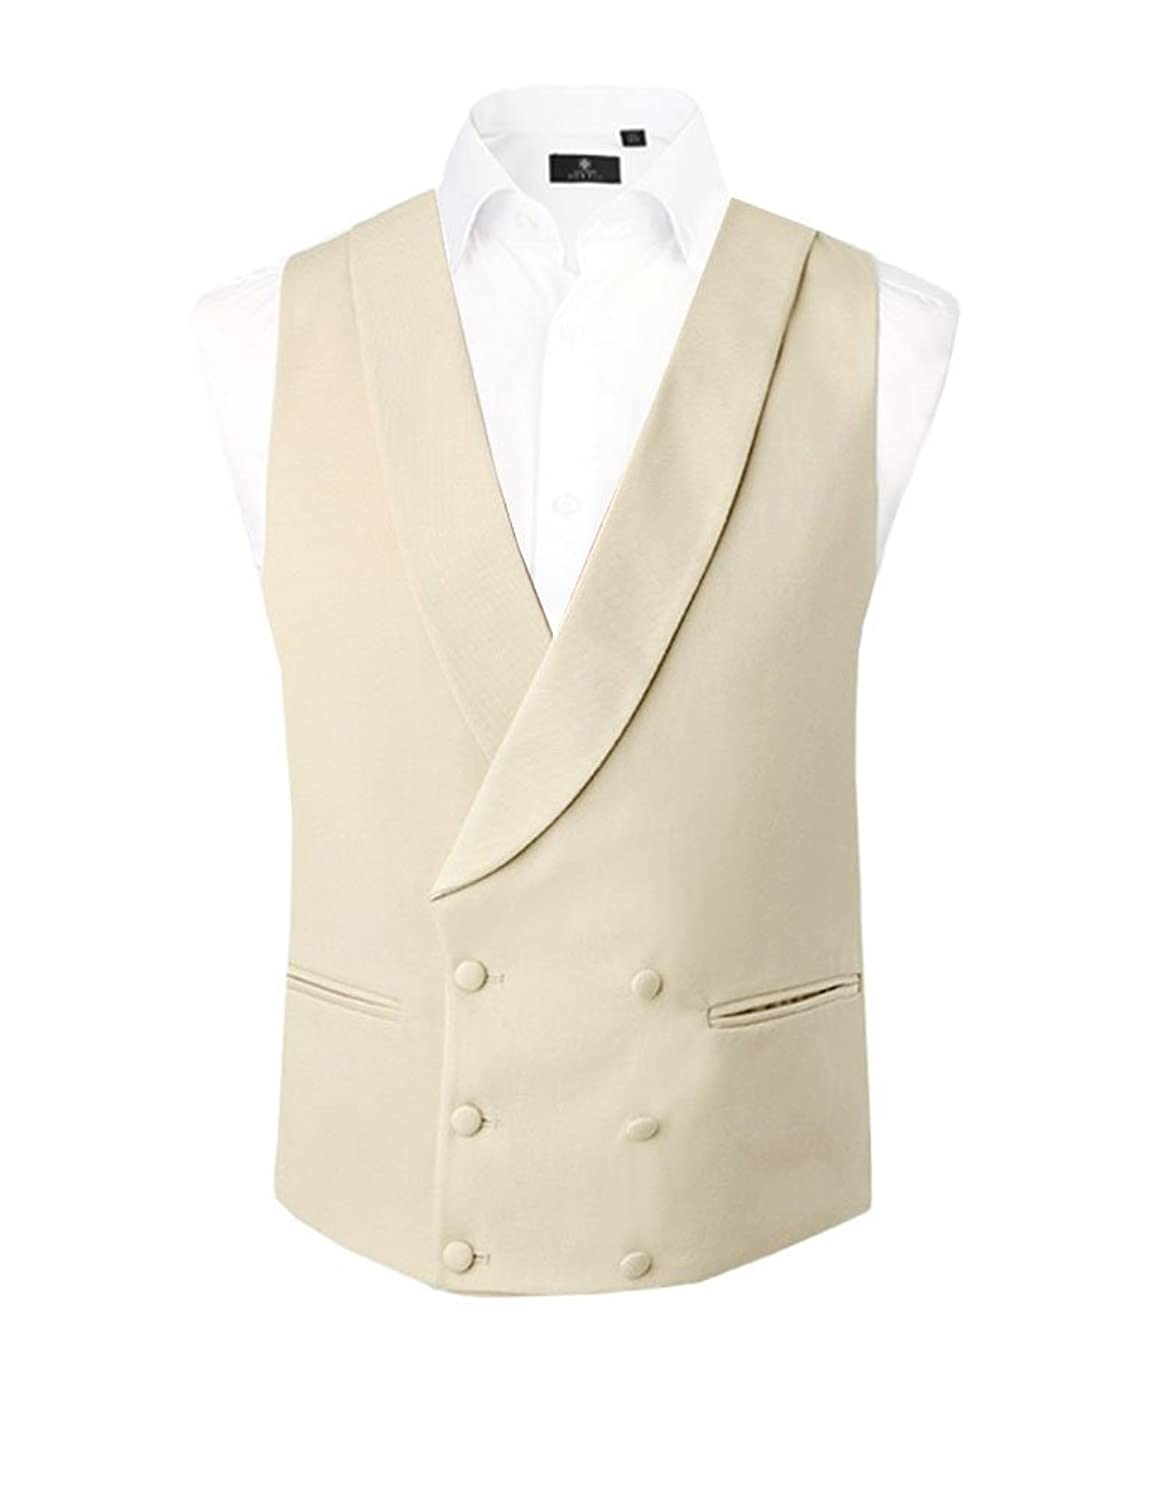 Victorian Men's Clothing Mens Gold/Buff Double Breasted Shawl Lapel Morning Suit Waistcoat £39.99 AT vintagedancer.com